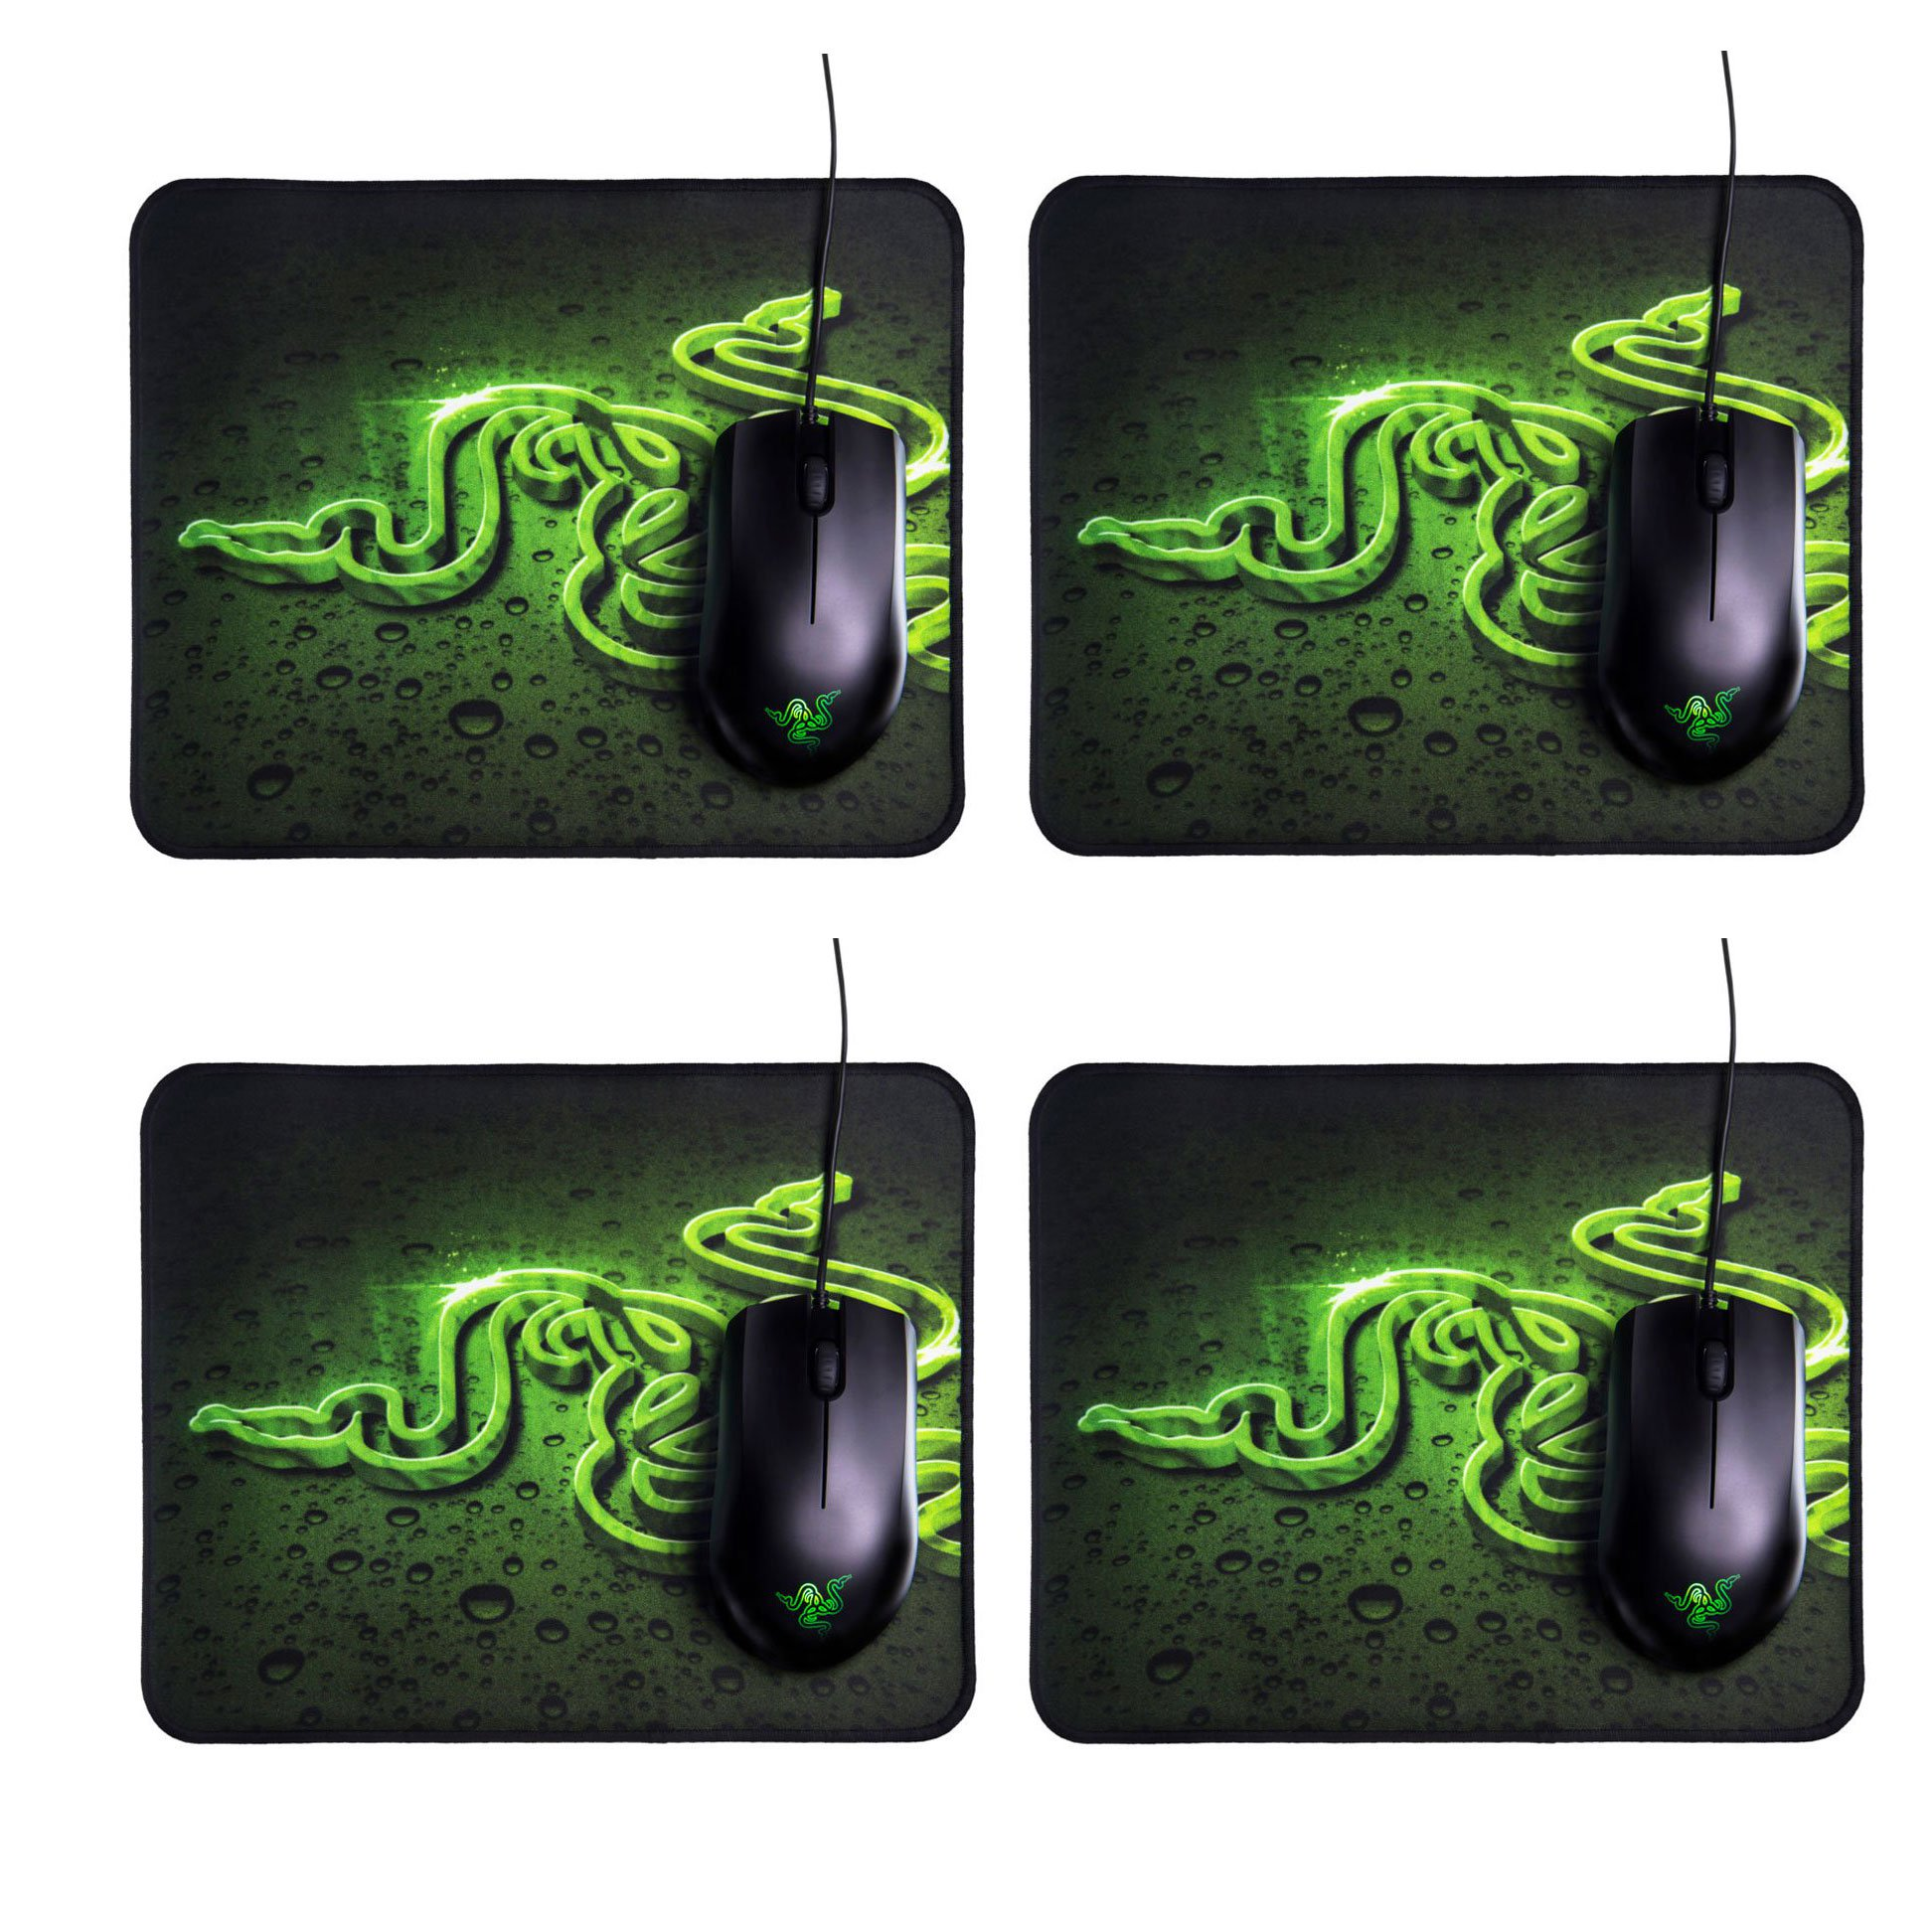 Razer Abyssus 2000 DPI Wired Mouse and Goliathus High Texture Mouse Pad (4 Pack)